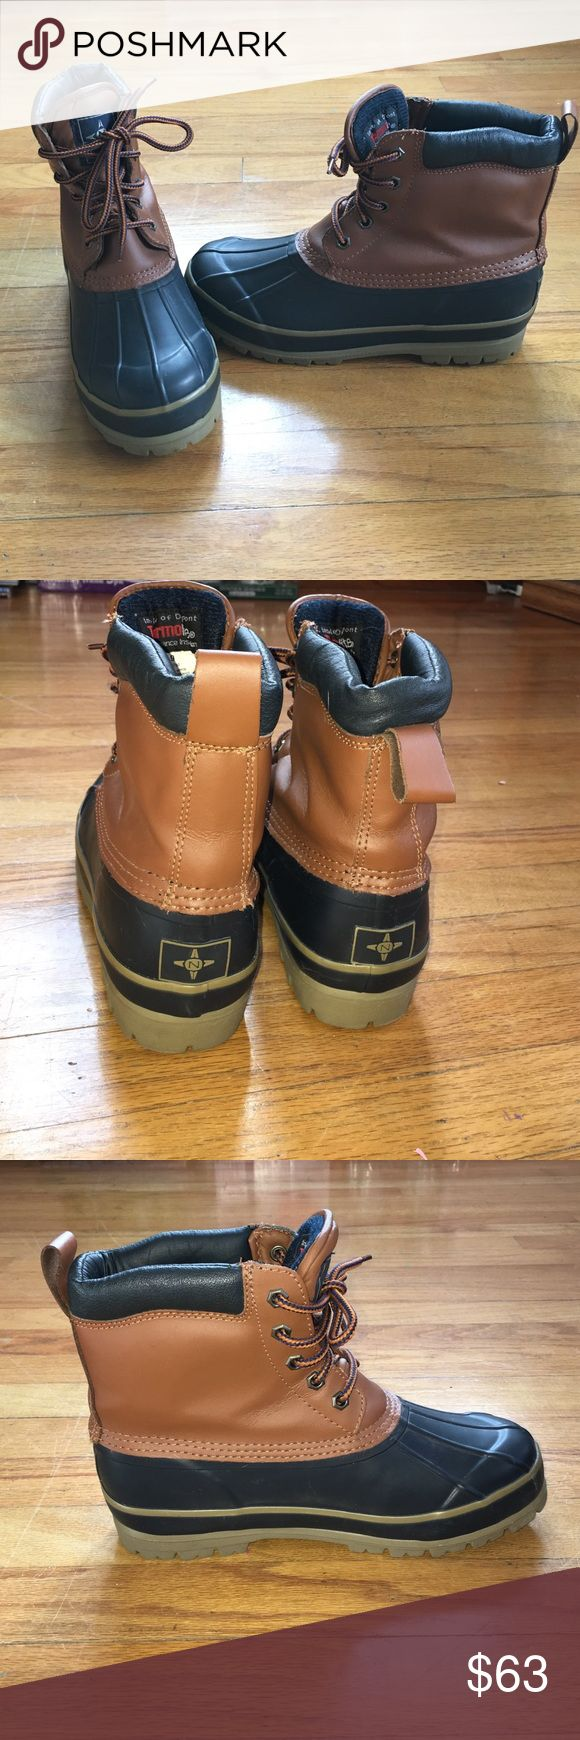 Women's duck boots! Women's size 9 duck boots! They Look great with winter outfits but these are also heavy duty boots to wear in the snow/rain/ice...etc! Hardly worn, looks like new! Very insulated on the inside so it will keep your feet warm as well! Any questions or concerns please feel free to ask if be happy to help! Shoes Winter & Rain Boots